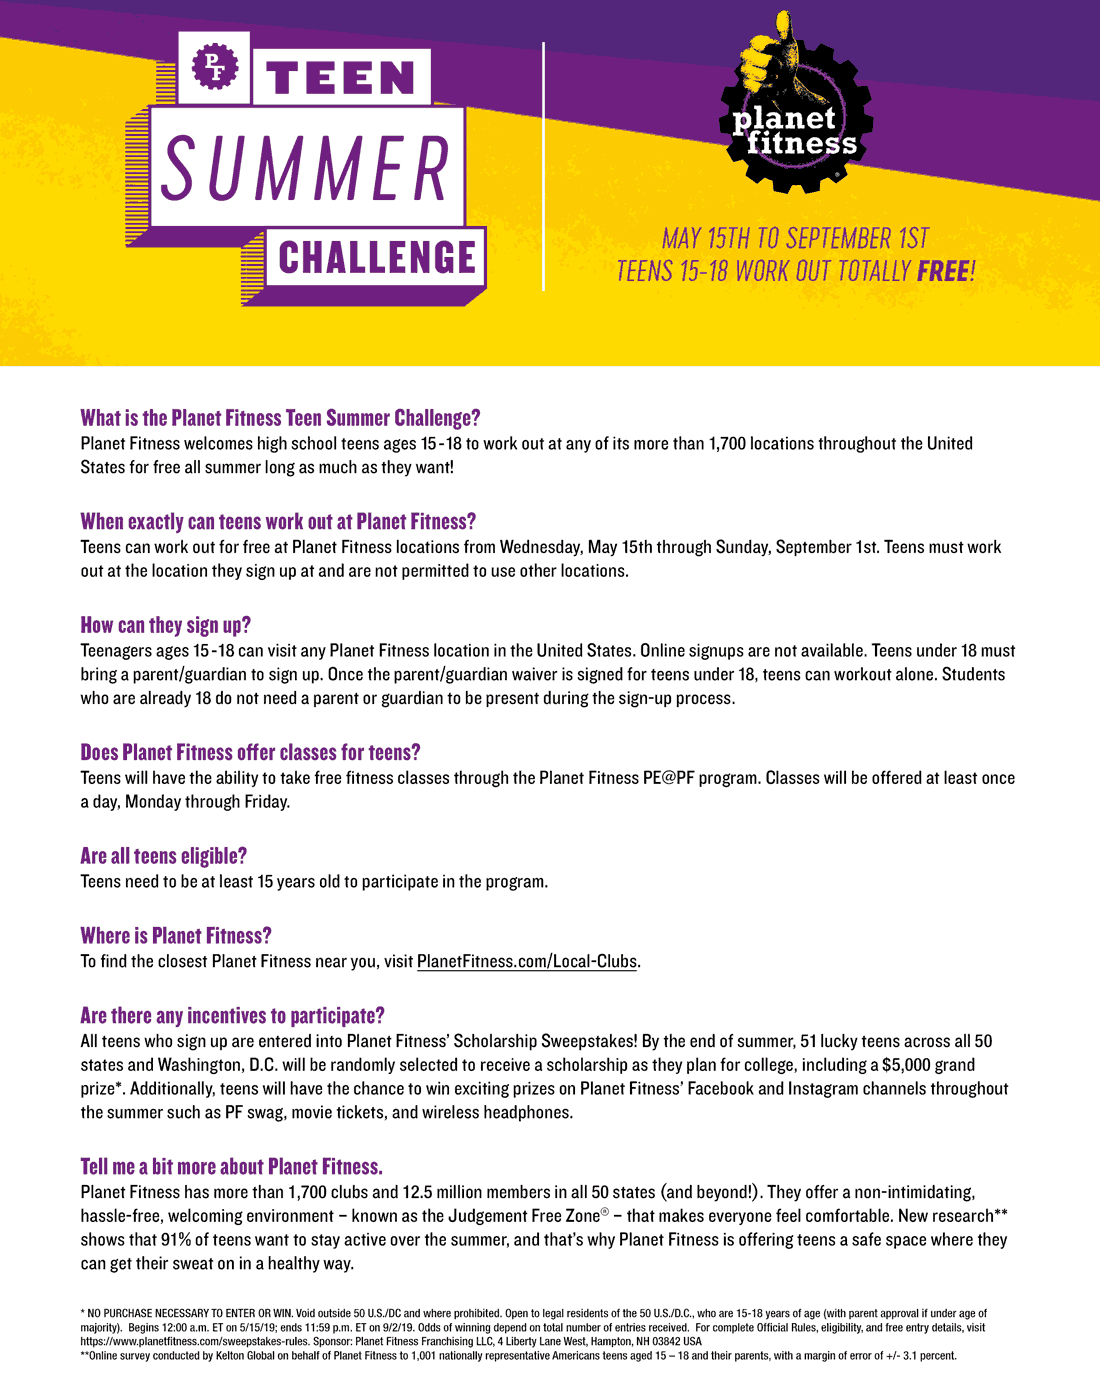 Planet Fitness Coupon September 2019 Teens are free this summer at Planet Fitness